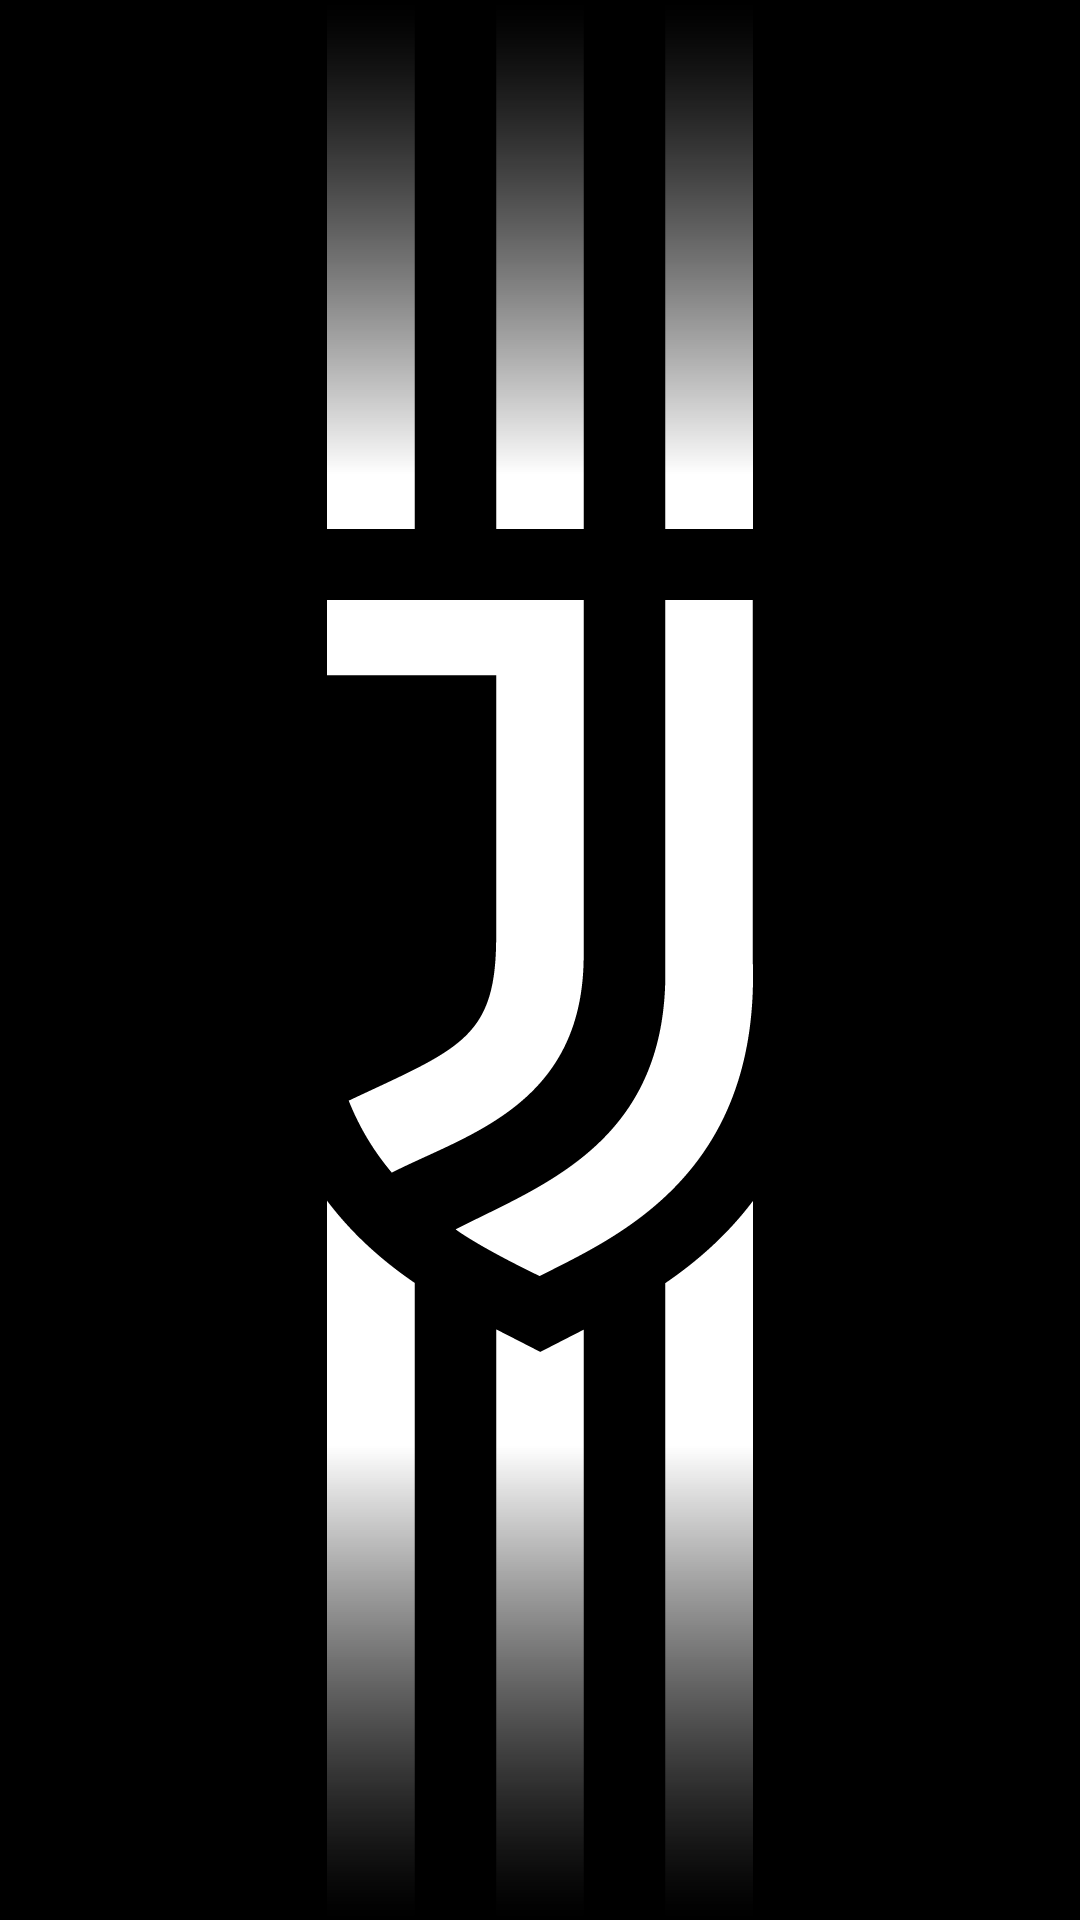 Juventus New Logo phone wallpaper   JUVENTUS   Pinterest   Logos     Juventus New Logo phone wallpaper